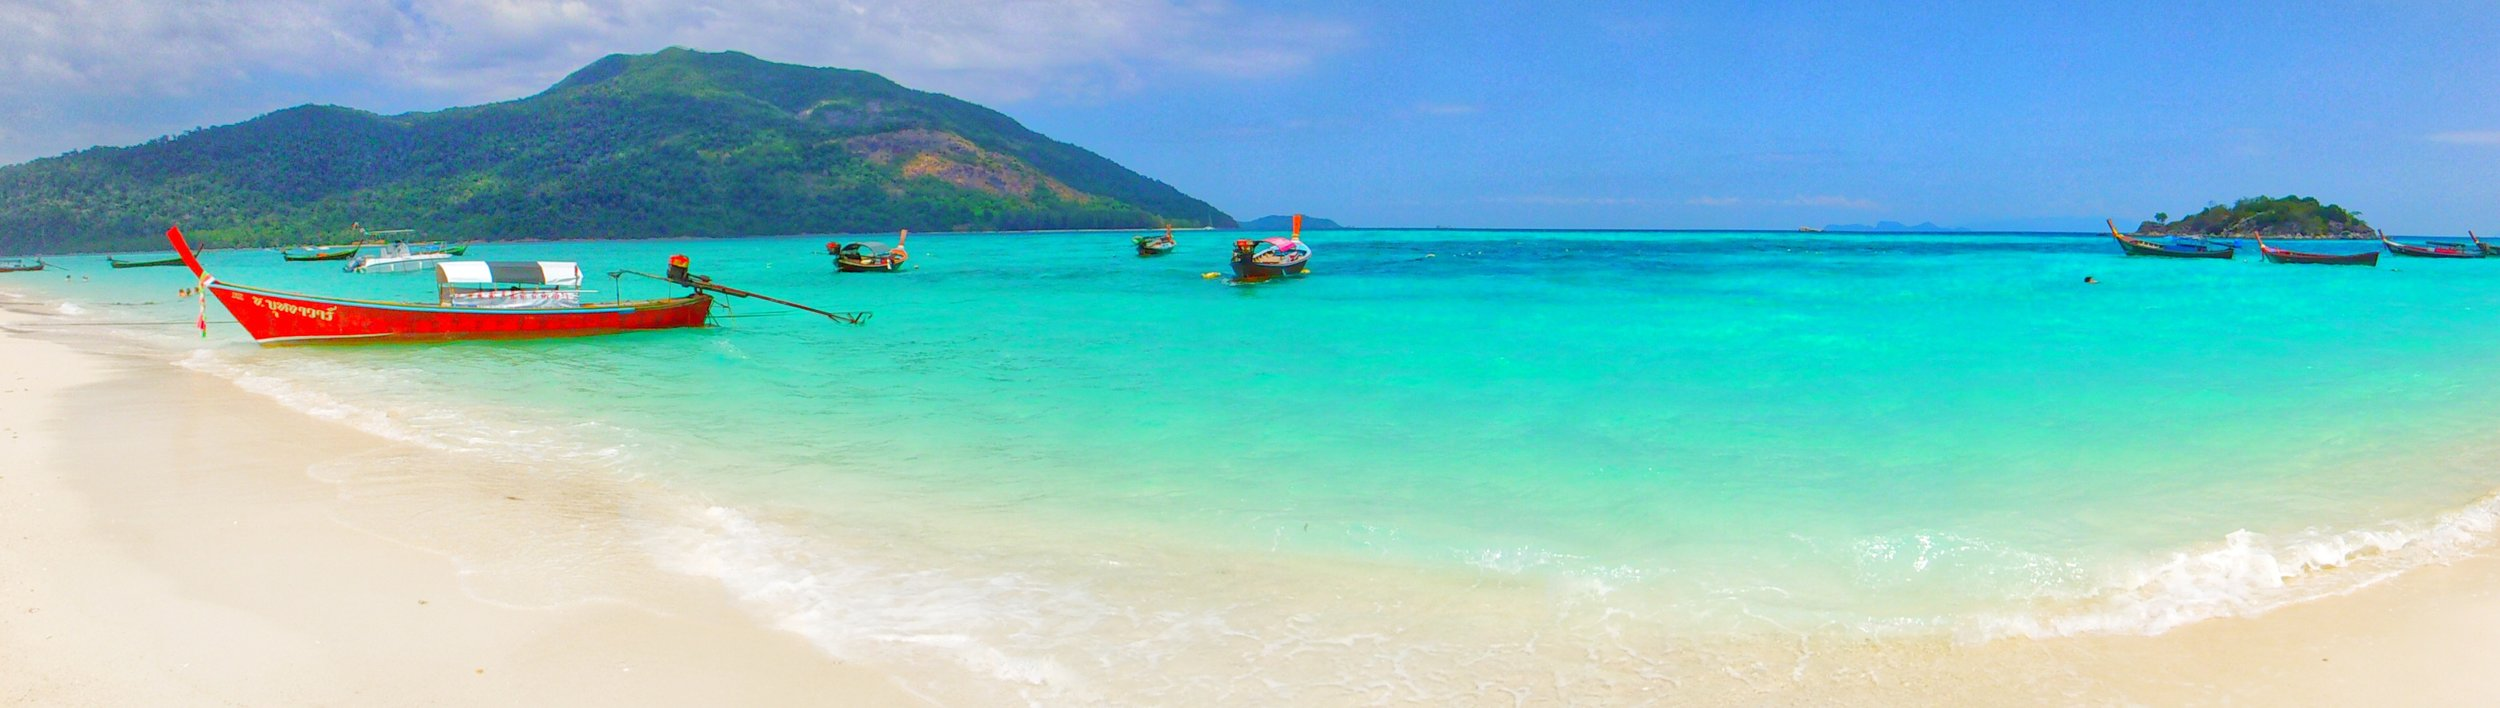 Longtail boats in Koh Lipe Thailand. Thailand's beautiful Andaman Islands.